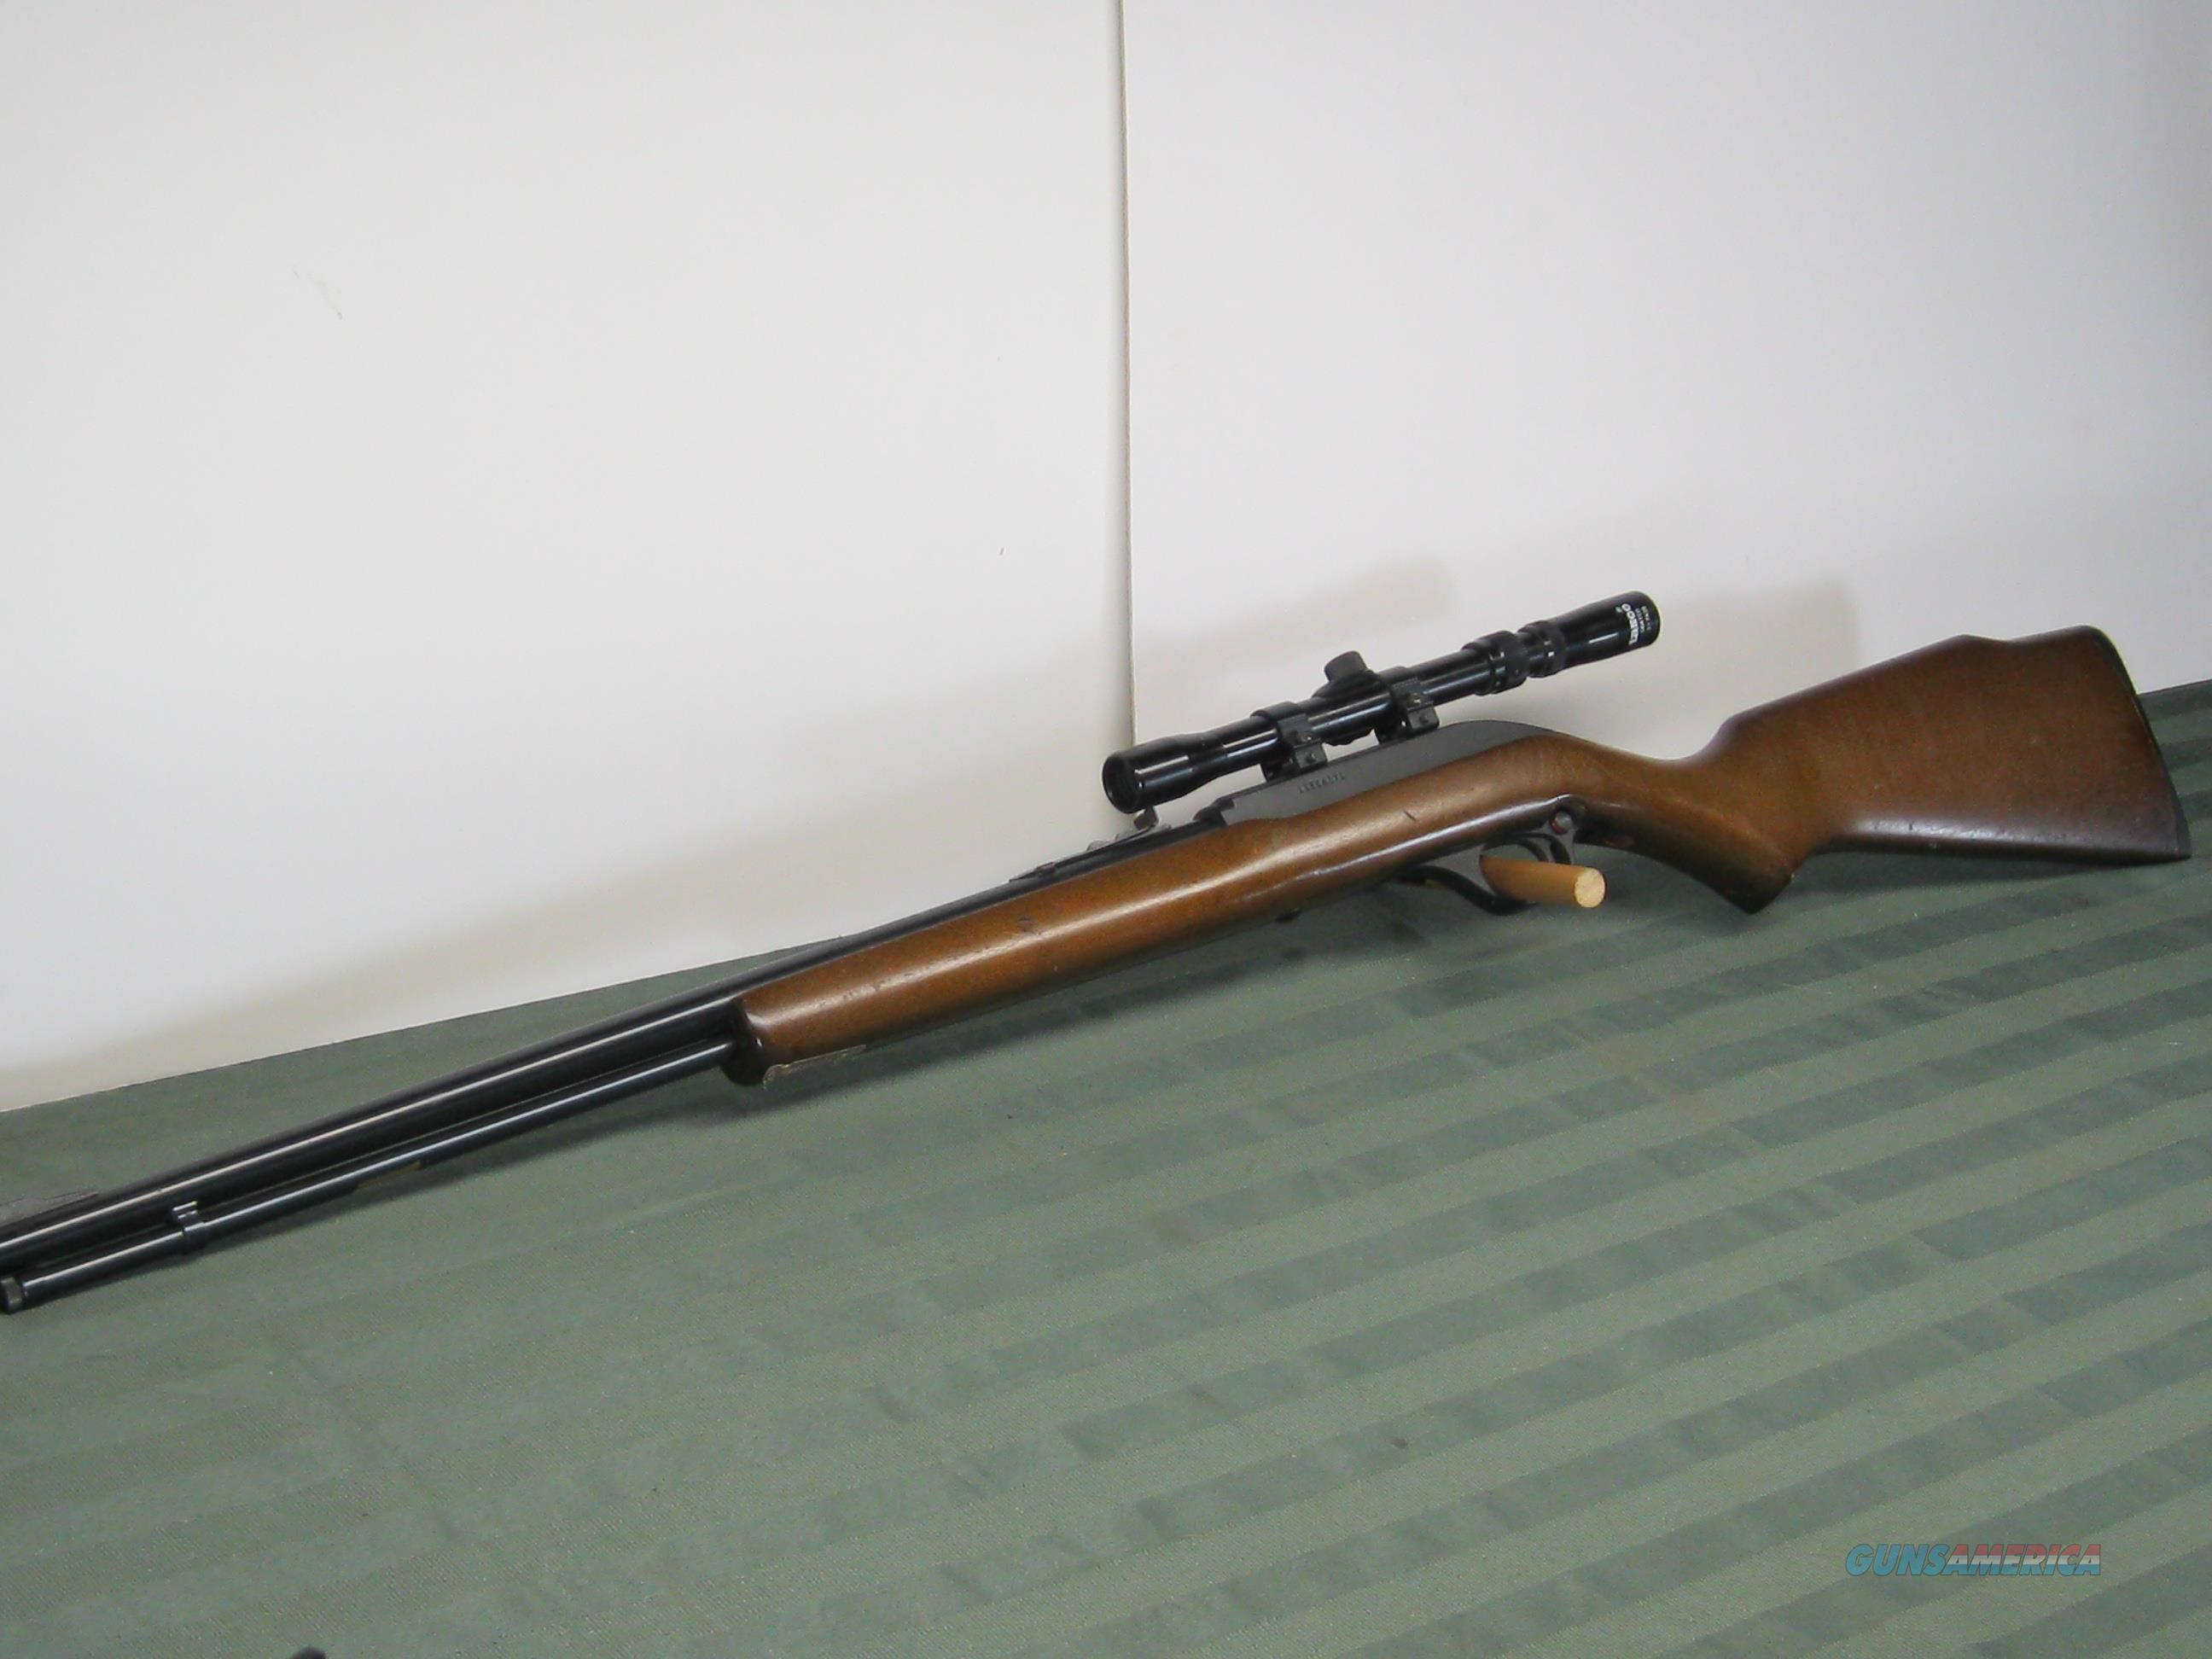 Marlin 60 22LR Auto  Guns > Rifles > Marlin Rifles > Modern > Semi-auto